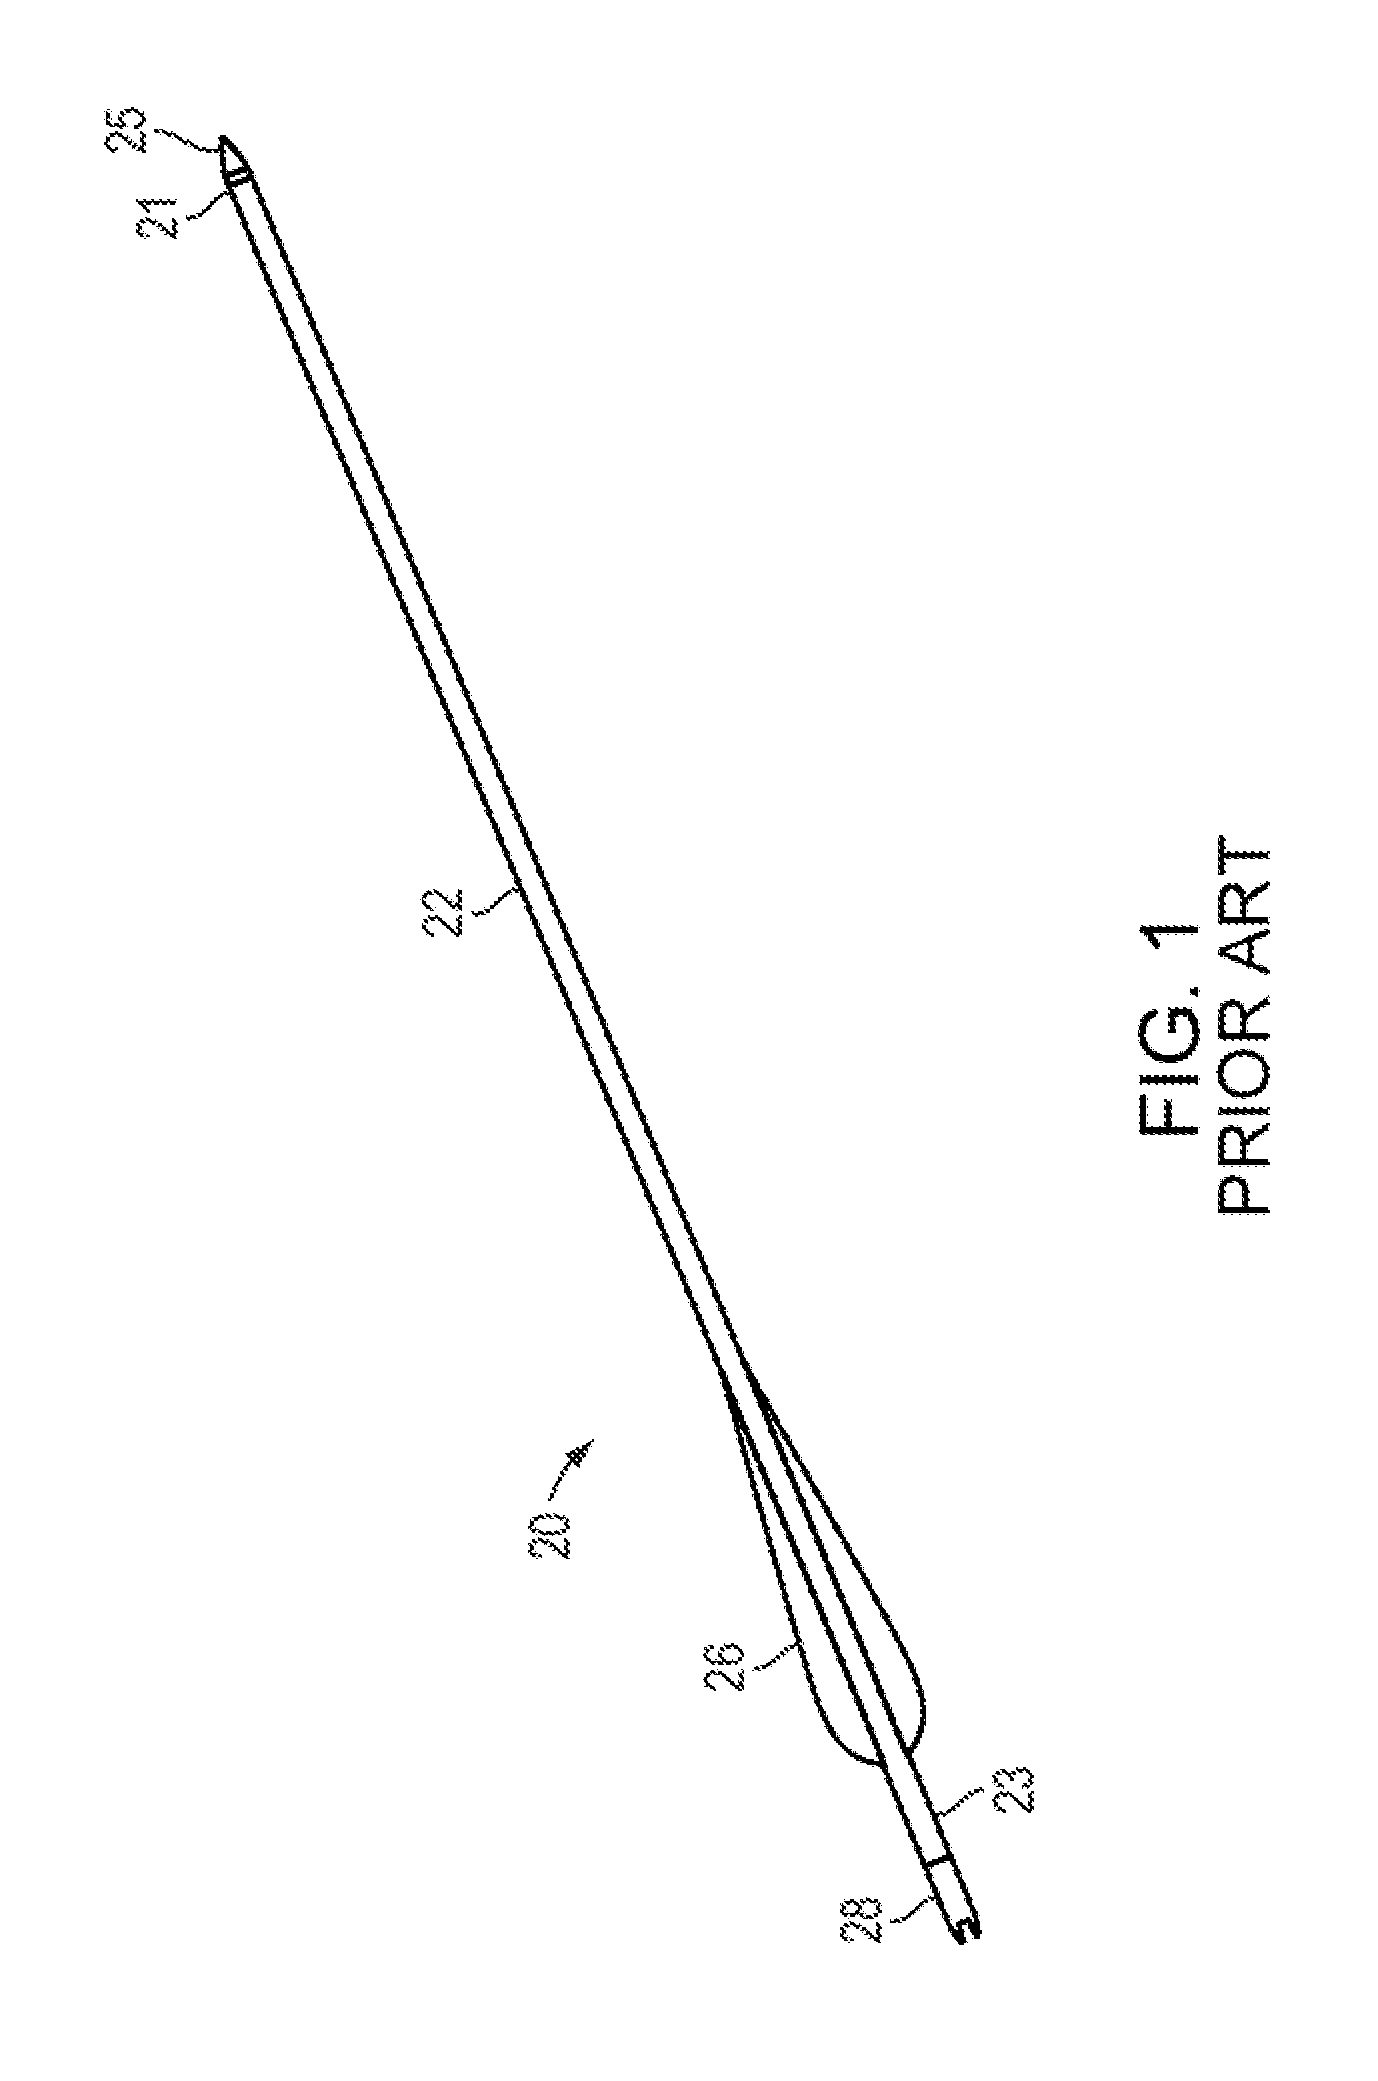 parts of a compound bow and arrow diagram